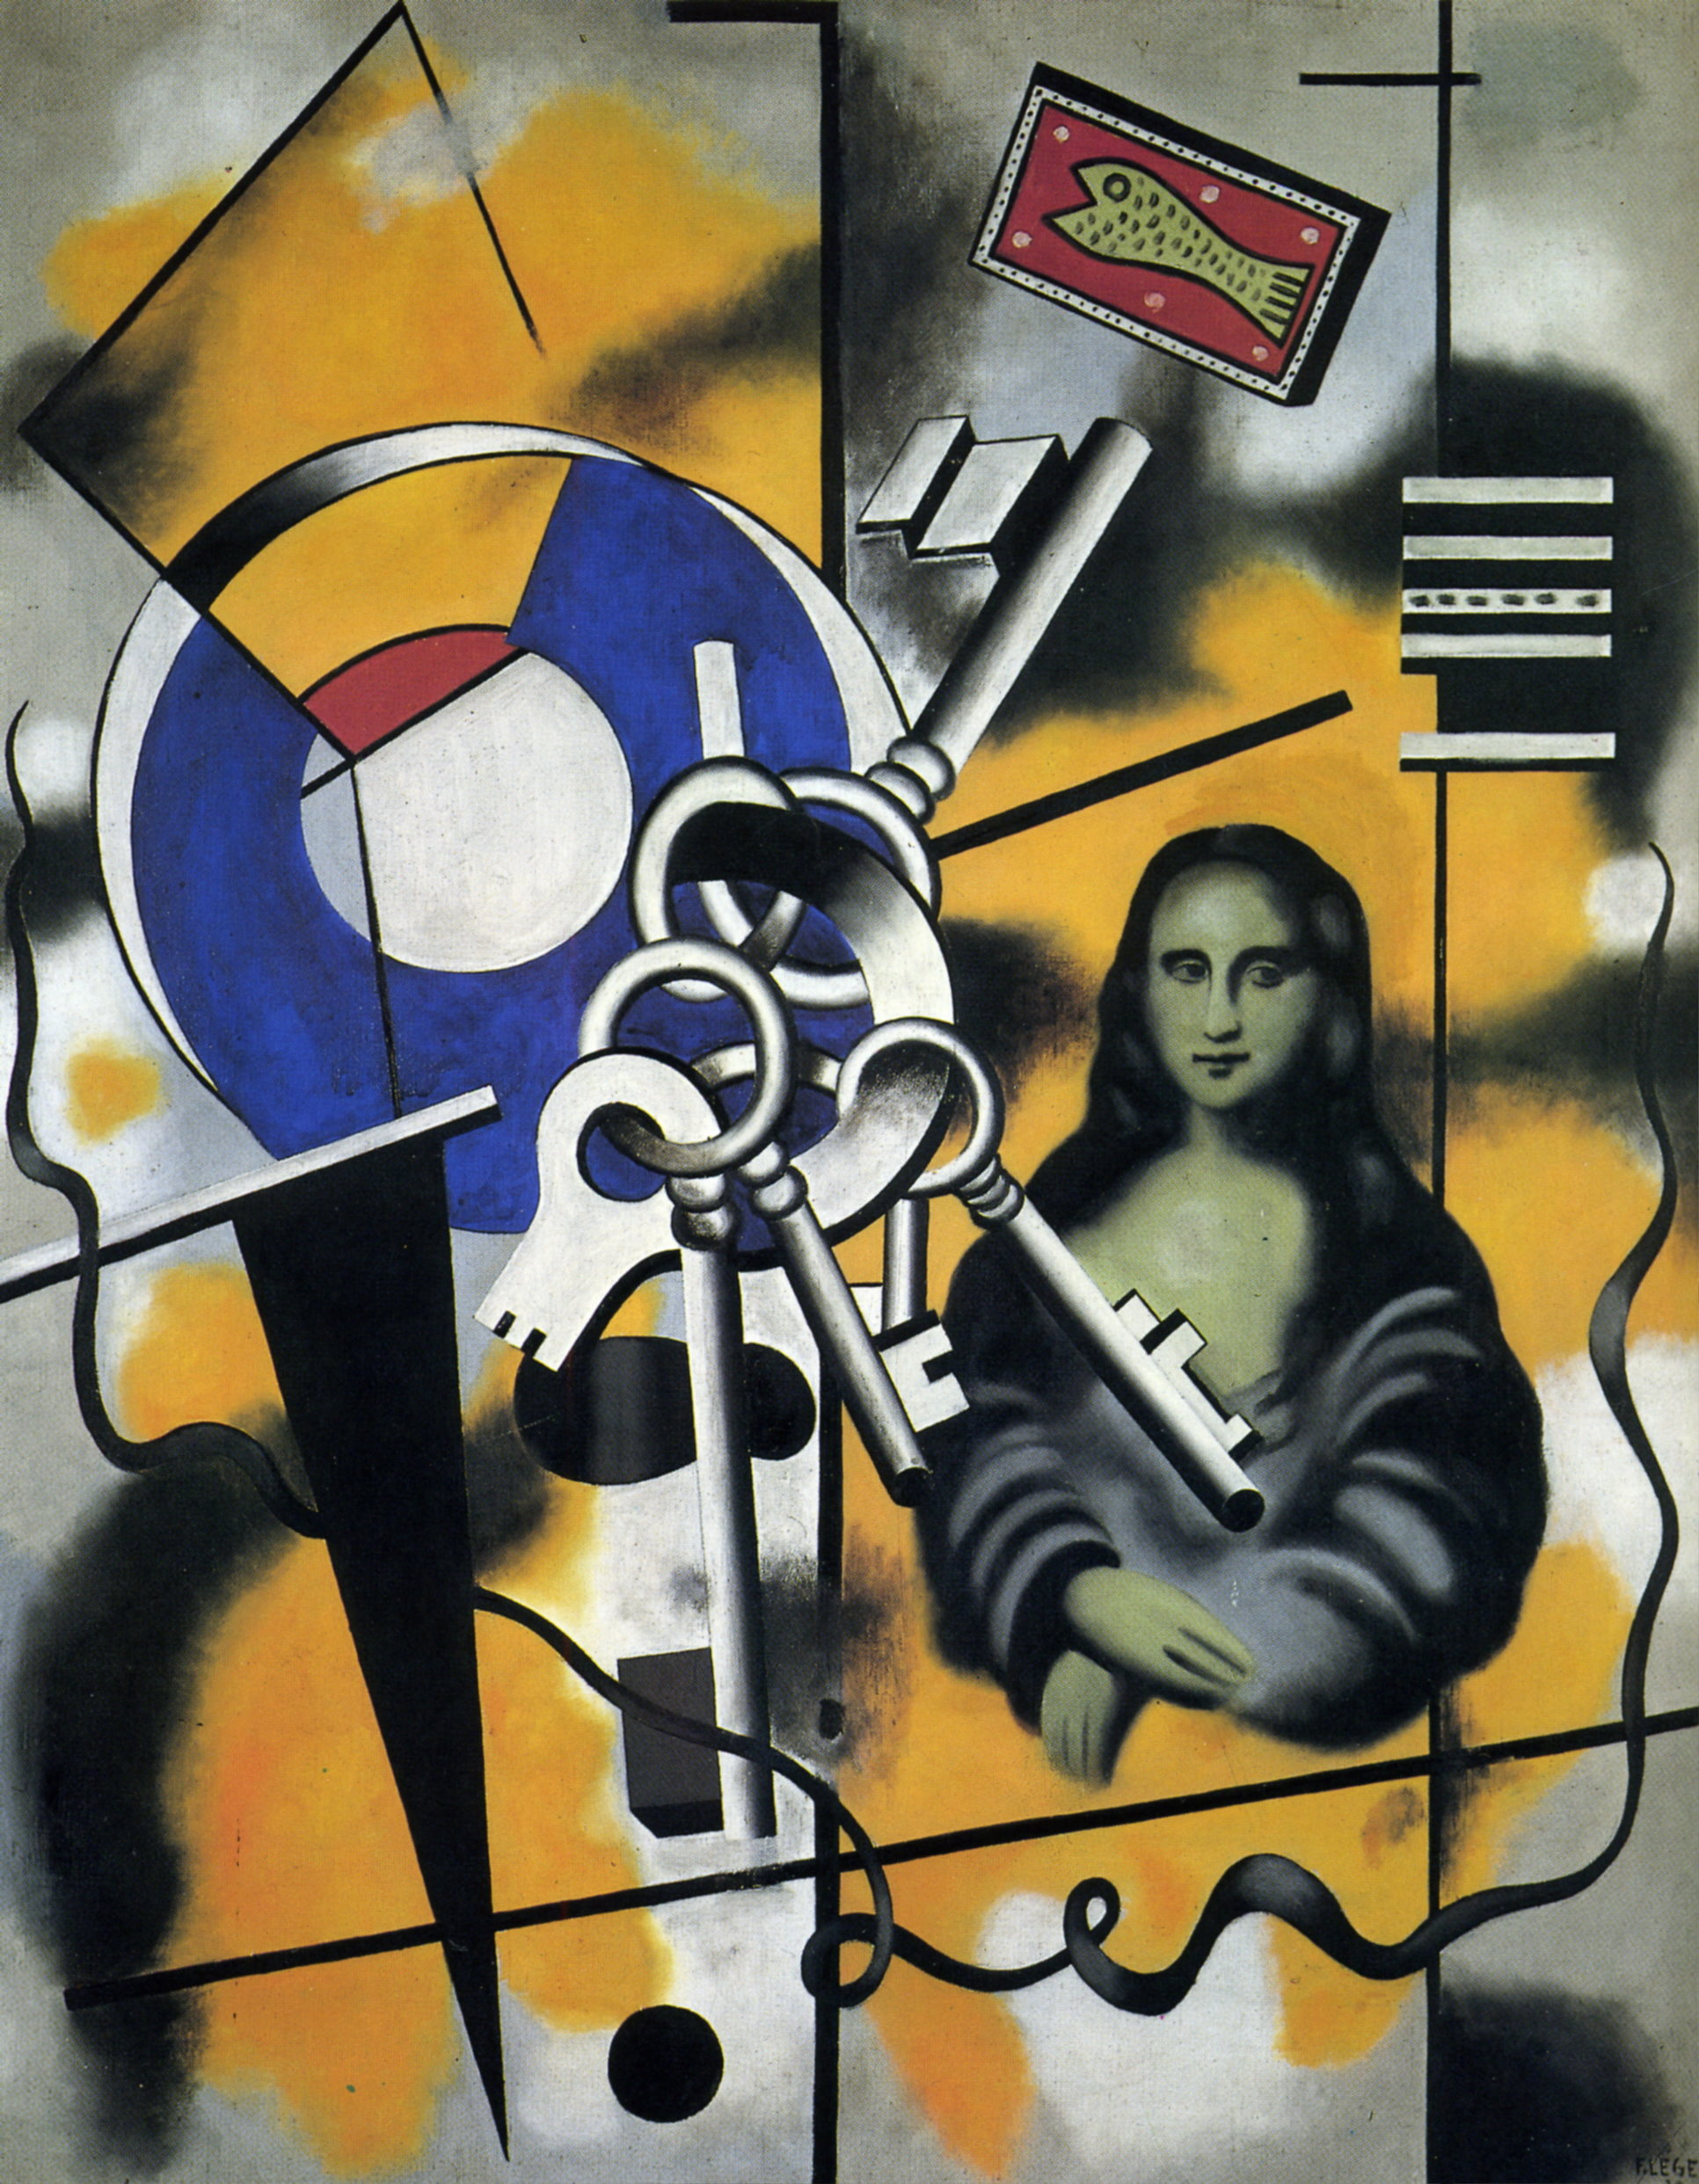 Populaire Mona Lisa with the keys, 1930 - Fernand Leger - WikiArt.org WP68